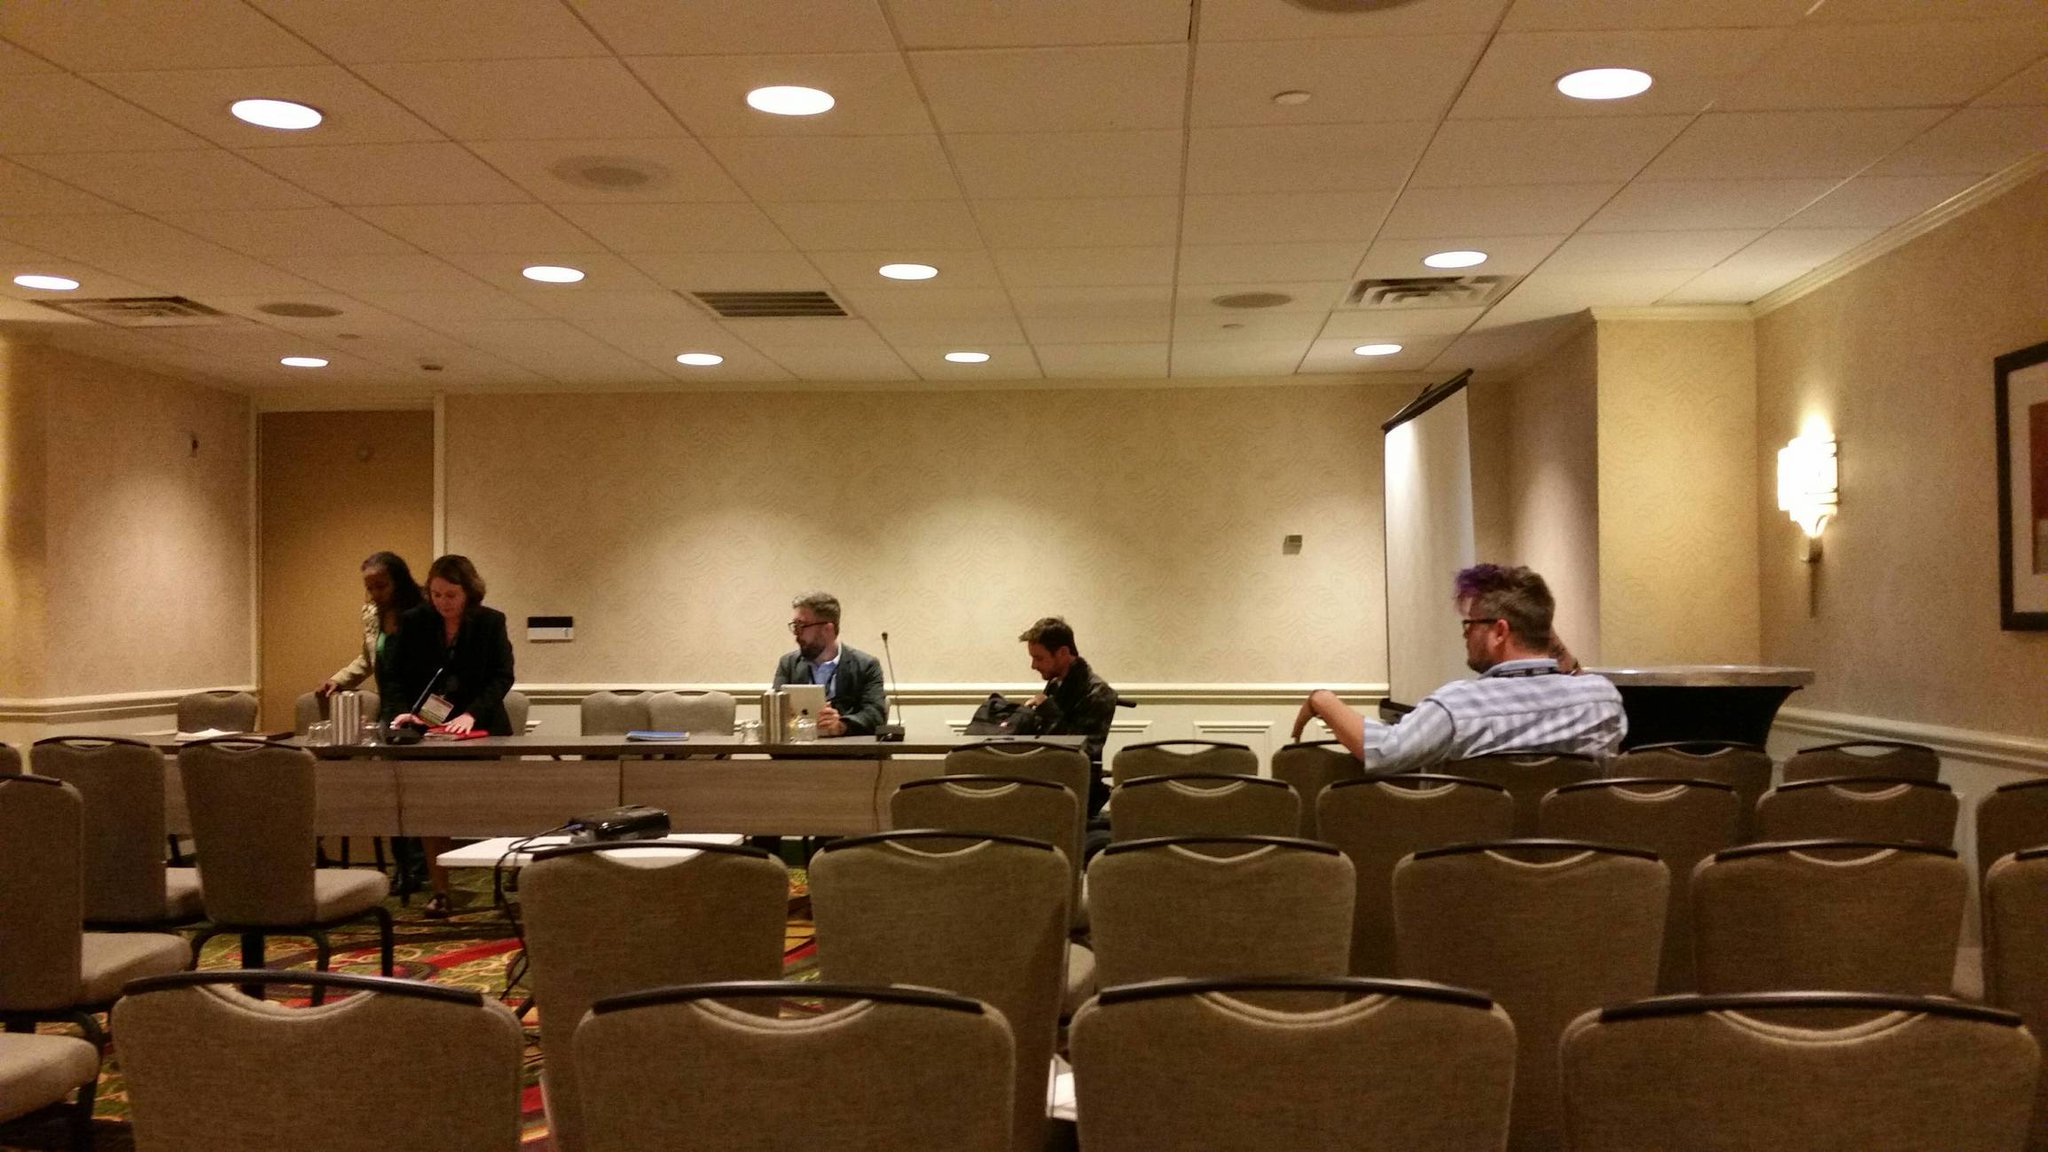 Panel getting situated. #p1984 #OAH17 - https://t.co/rqRcVKtPBl https://t.co/bvYNunZEZO